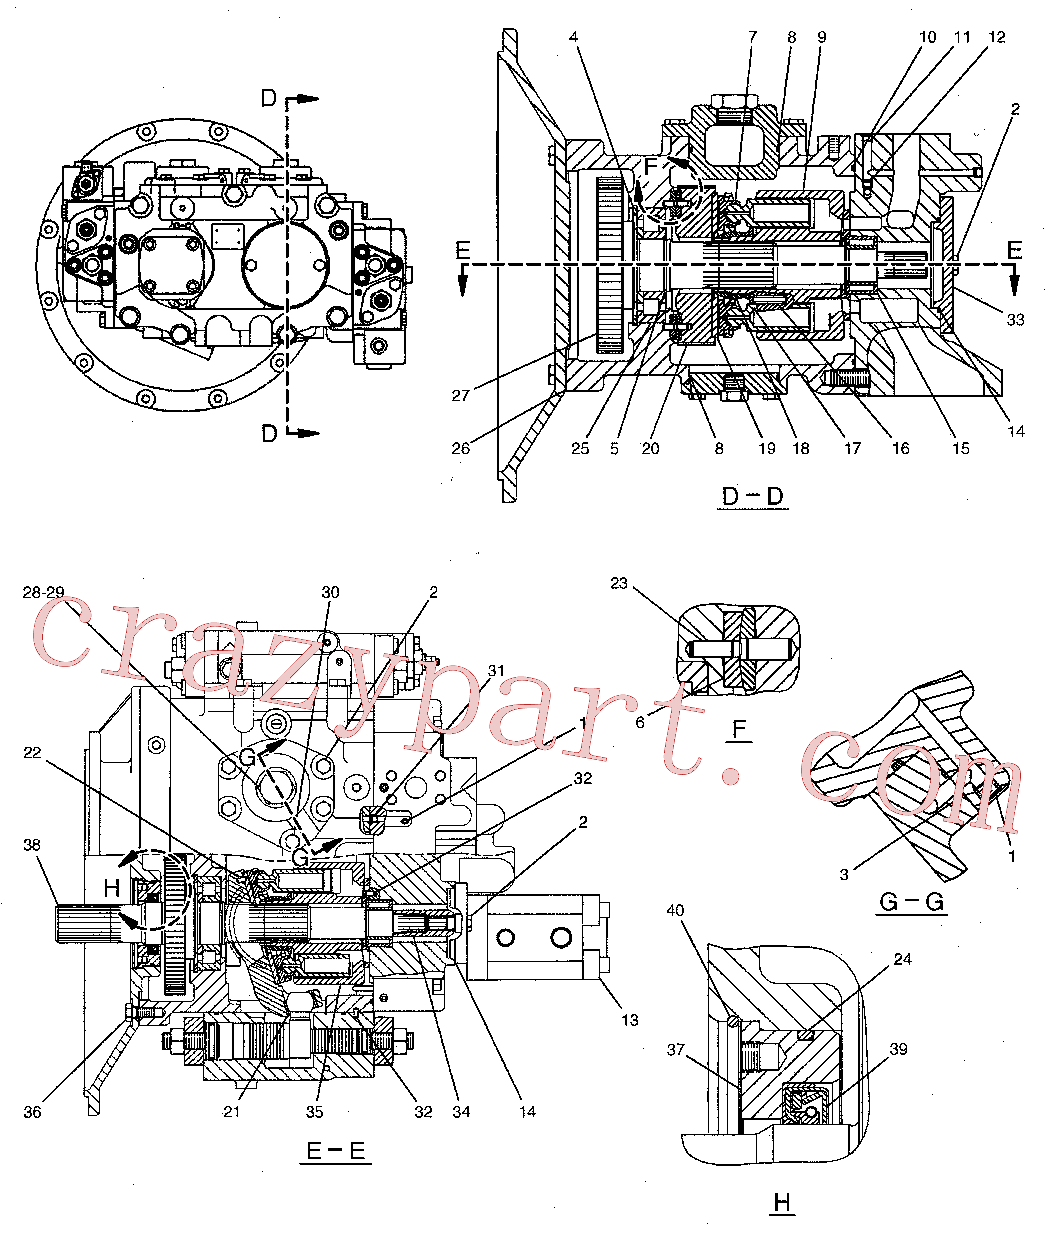 CAT 209-5890 for M325C MH Wheeled Excavator(WHEX) hydraulic system 244-8477 Assembly